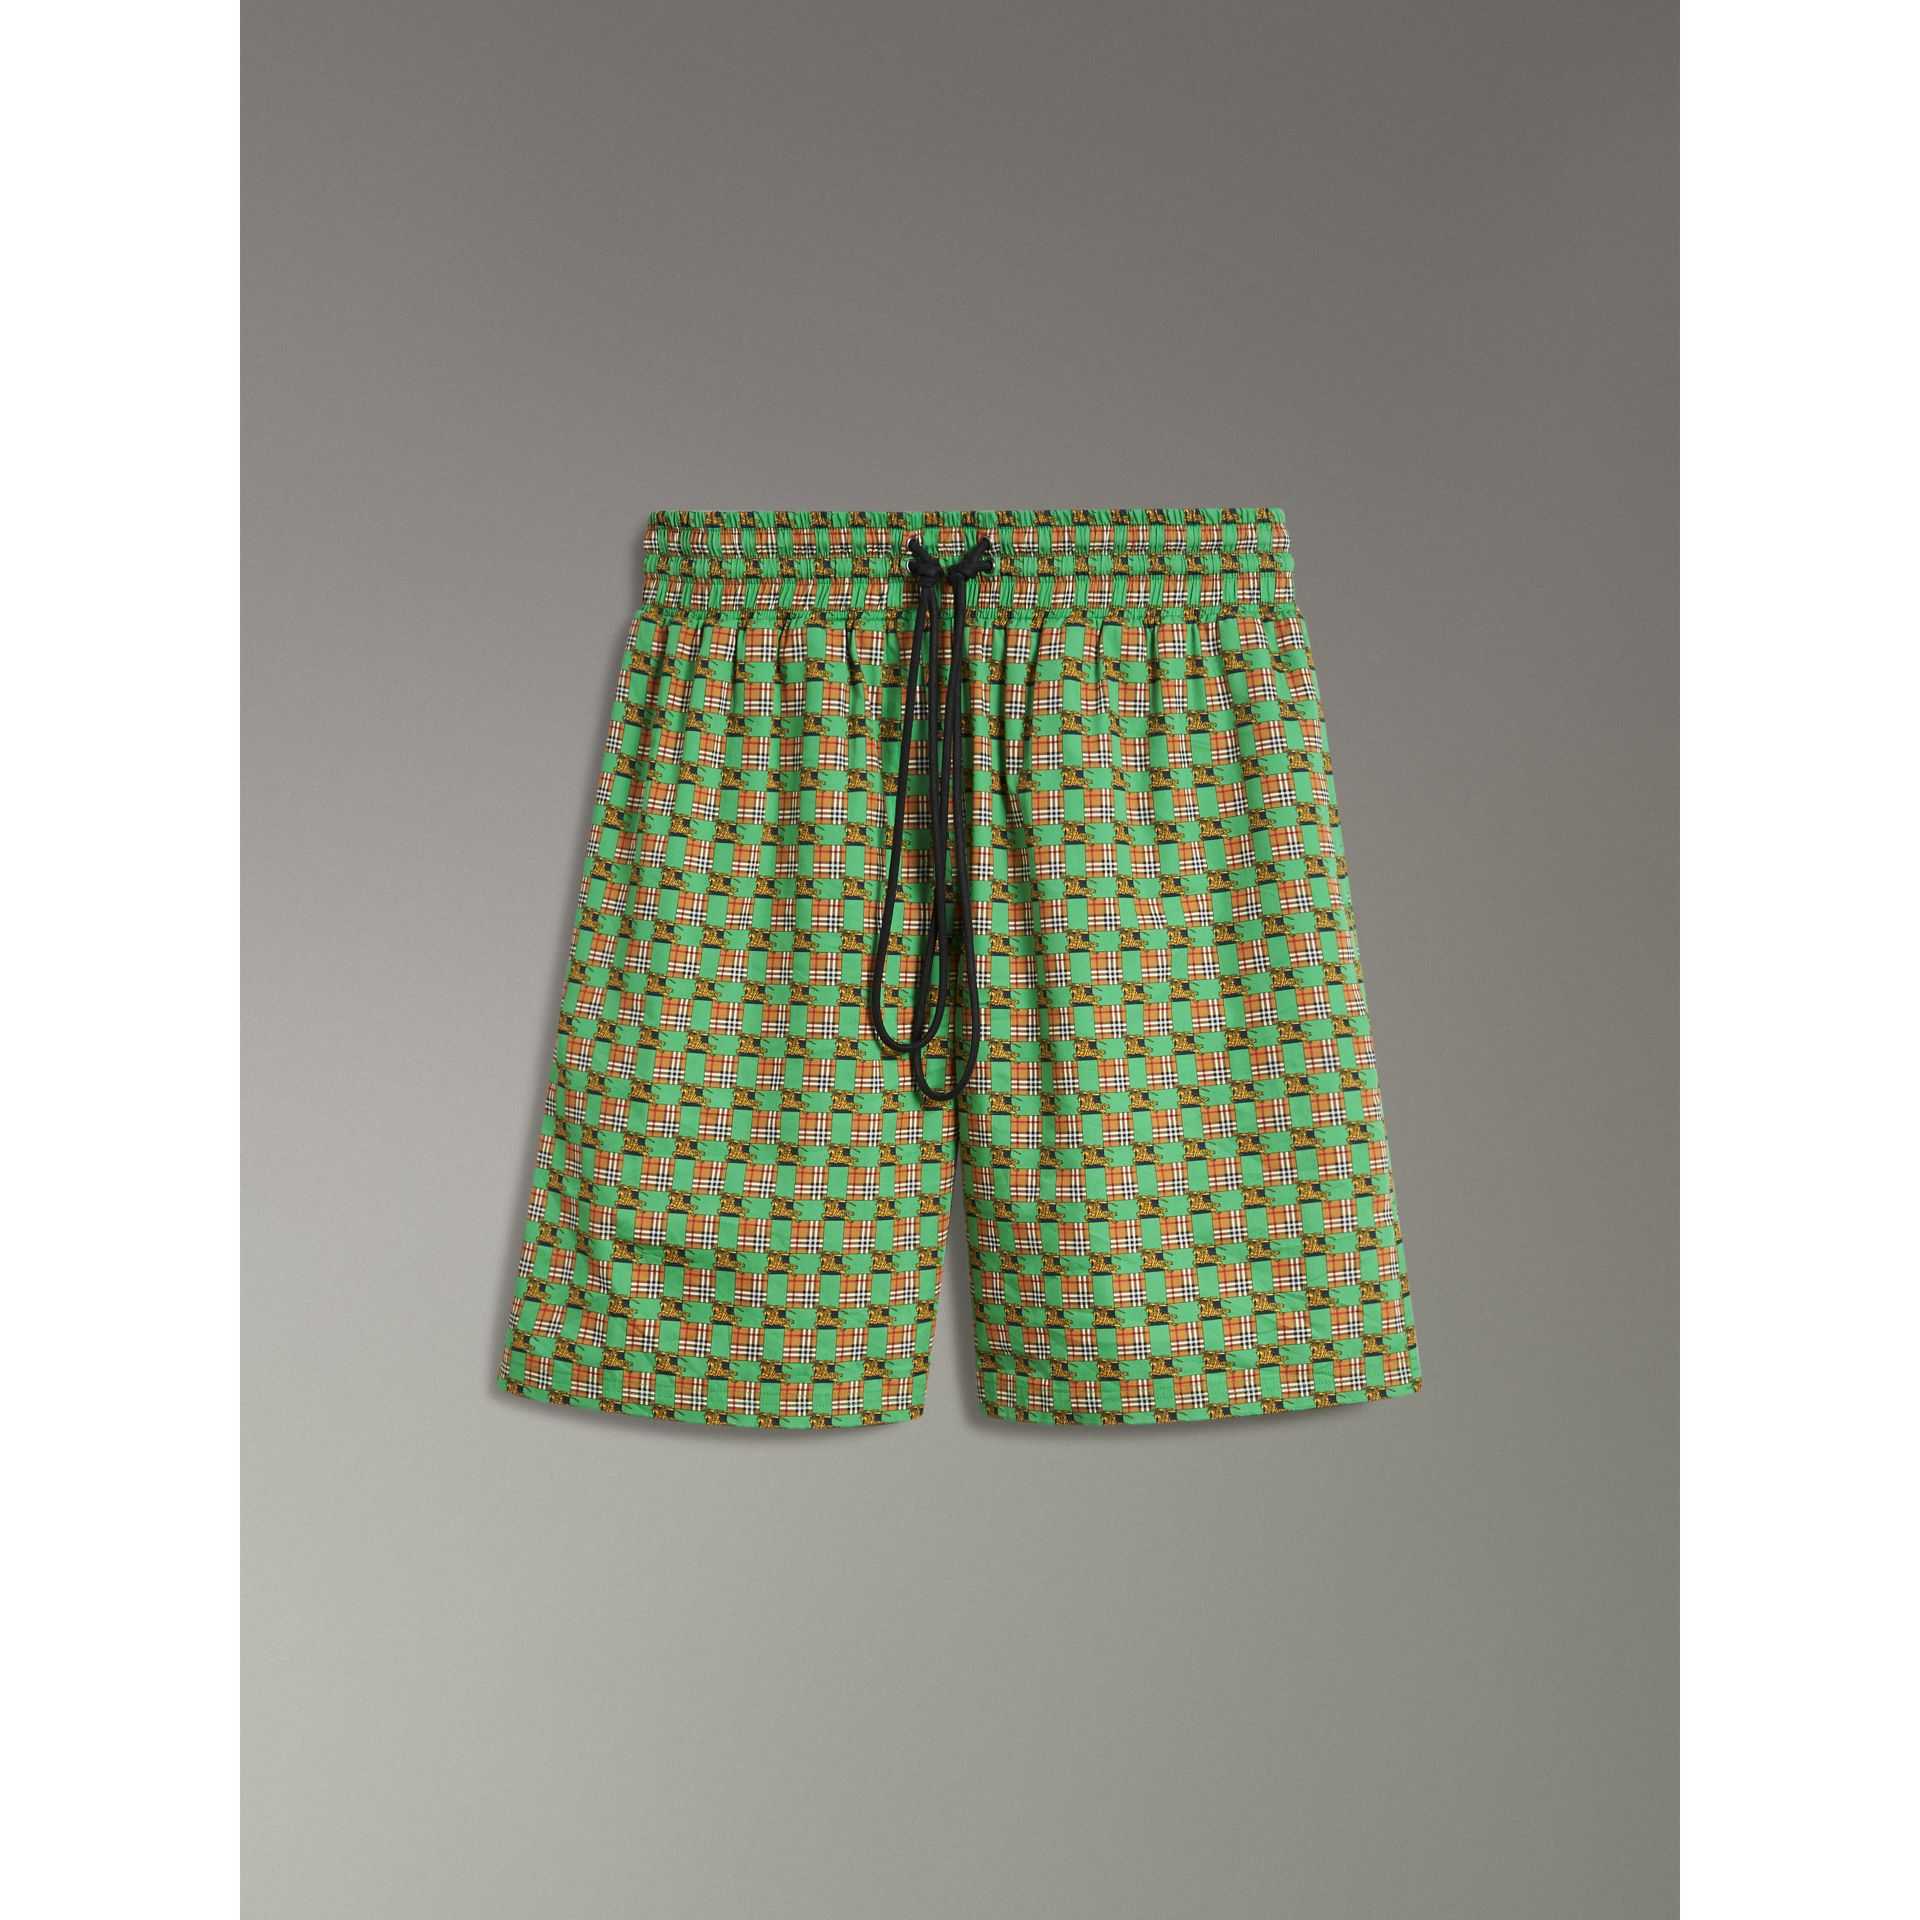 Tiled Archive Print Cotton Drawcord Shorts in Dark Forest Green - Women | Burberry - gallery image 3